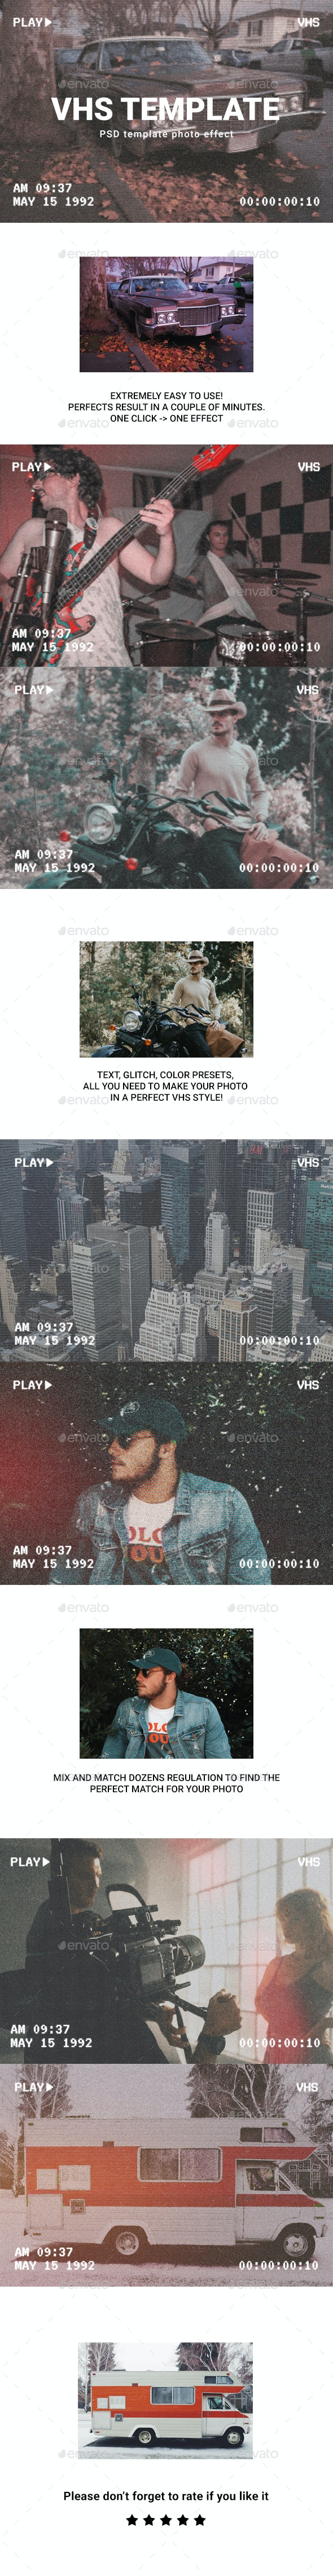 Vhs photo template - Photo Templates Graphics